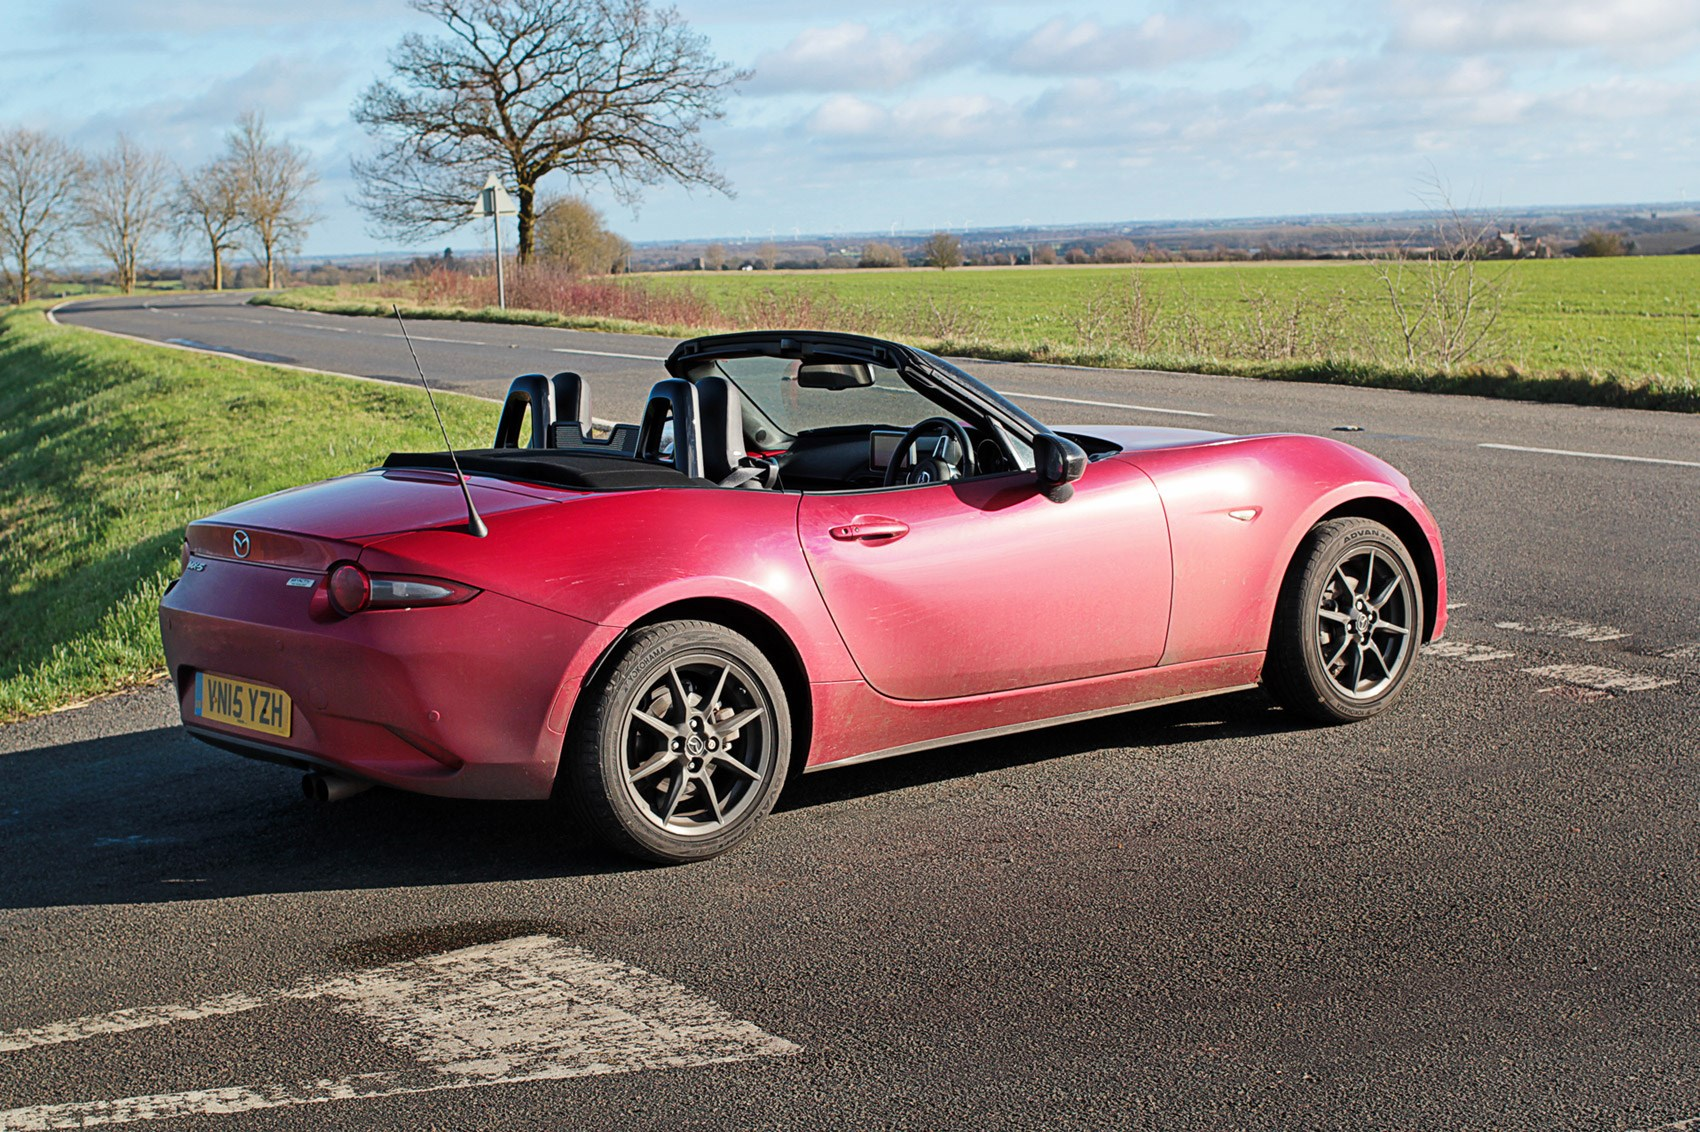 mazda mx 5 1 5 sport nav 2016 long term test review. Black Bedroom Furniture Sets. Home Design Ideas